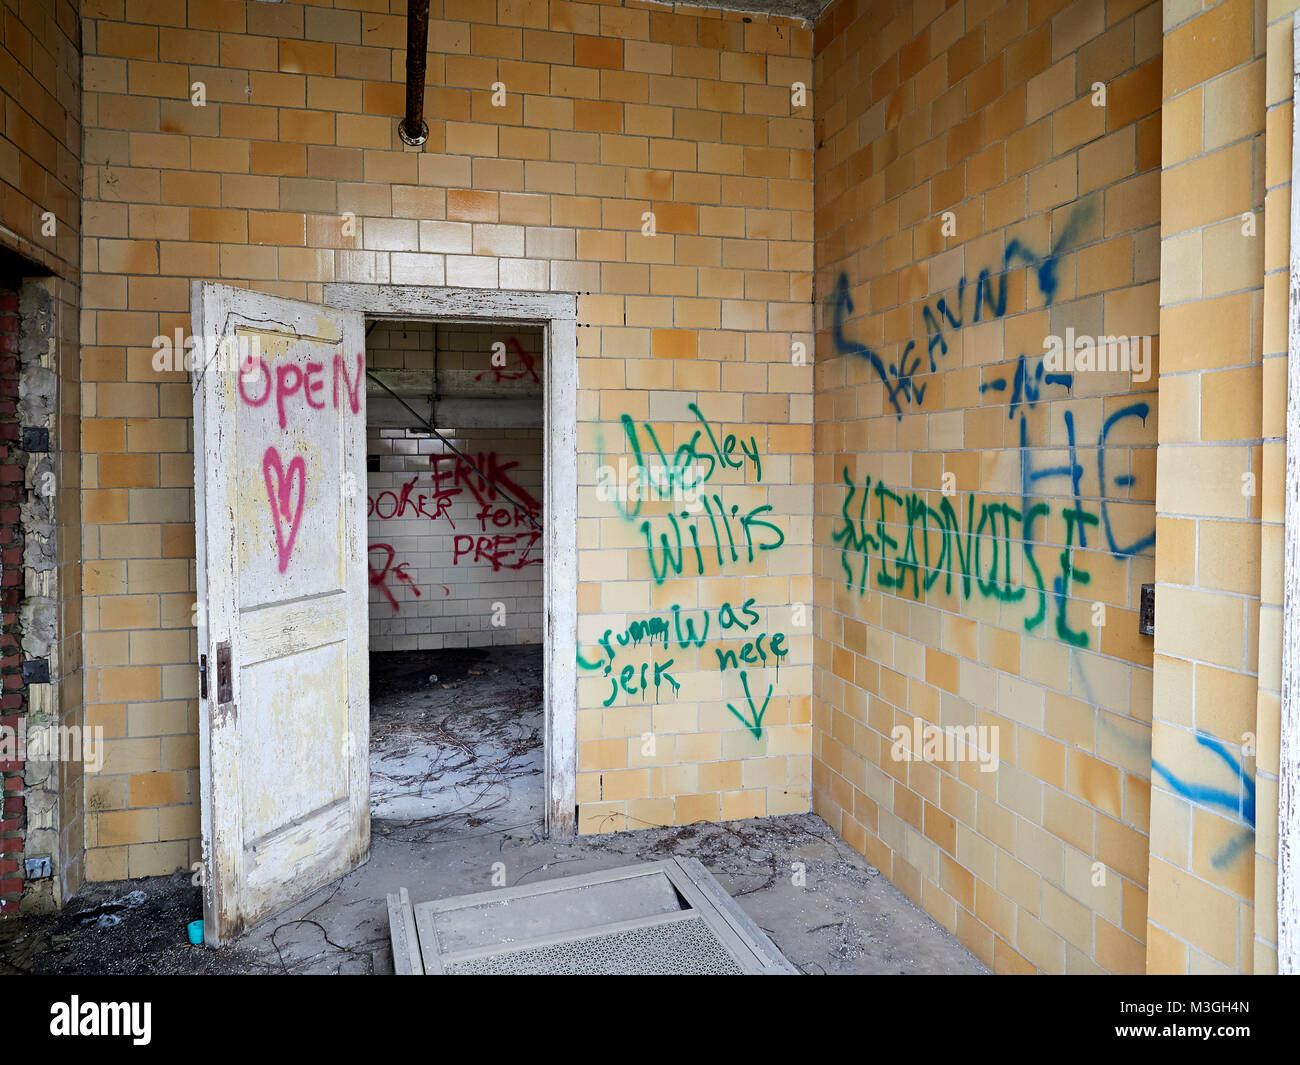 Interior of abandoned building with graffiti painted on the tile walls in an industrial section of Montgomery Alabama, - Stock Image